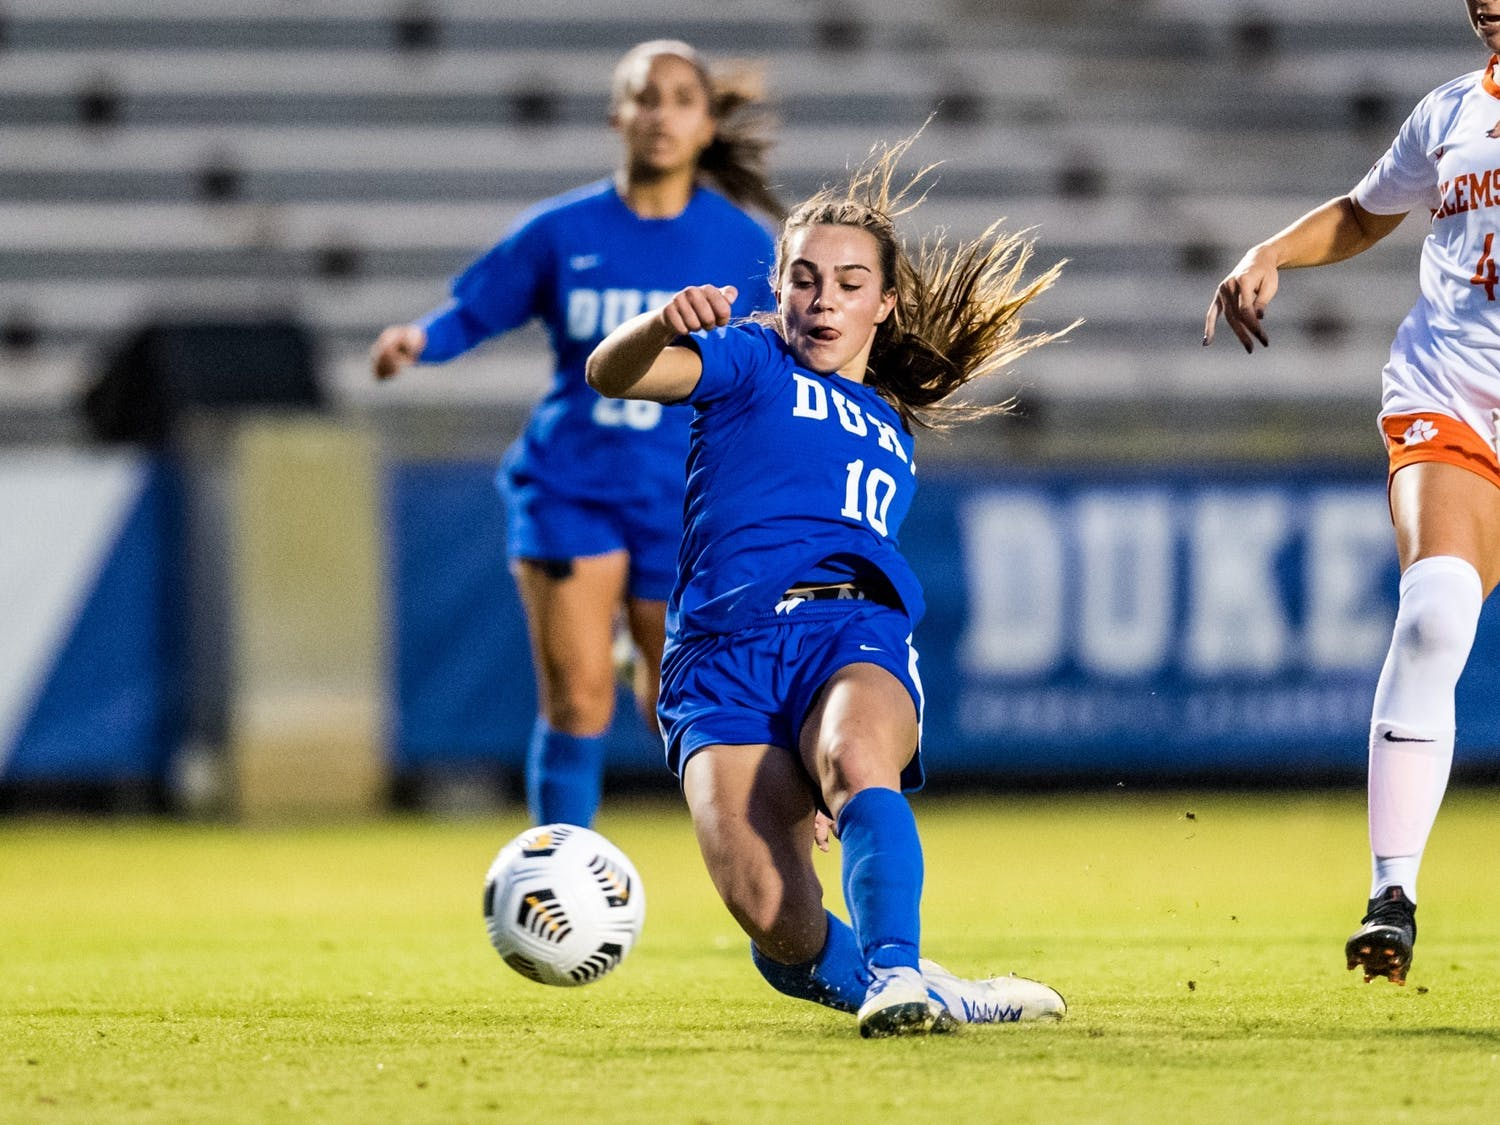 Freshman Olivia Migli, who notched the game's lone goal in the Blue Devils' last matchup against Clemson, will be an essential part of Duke's offense.